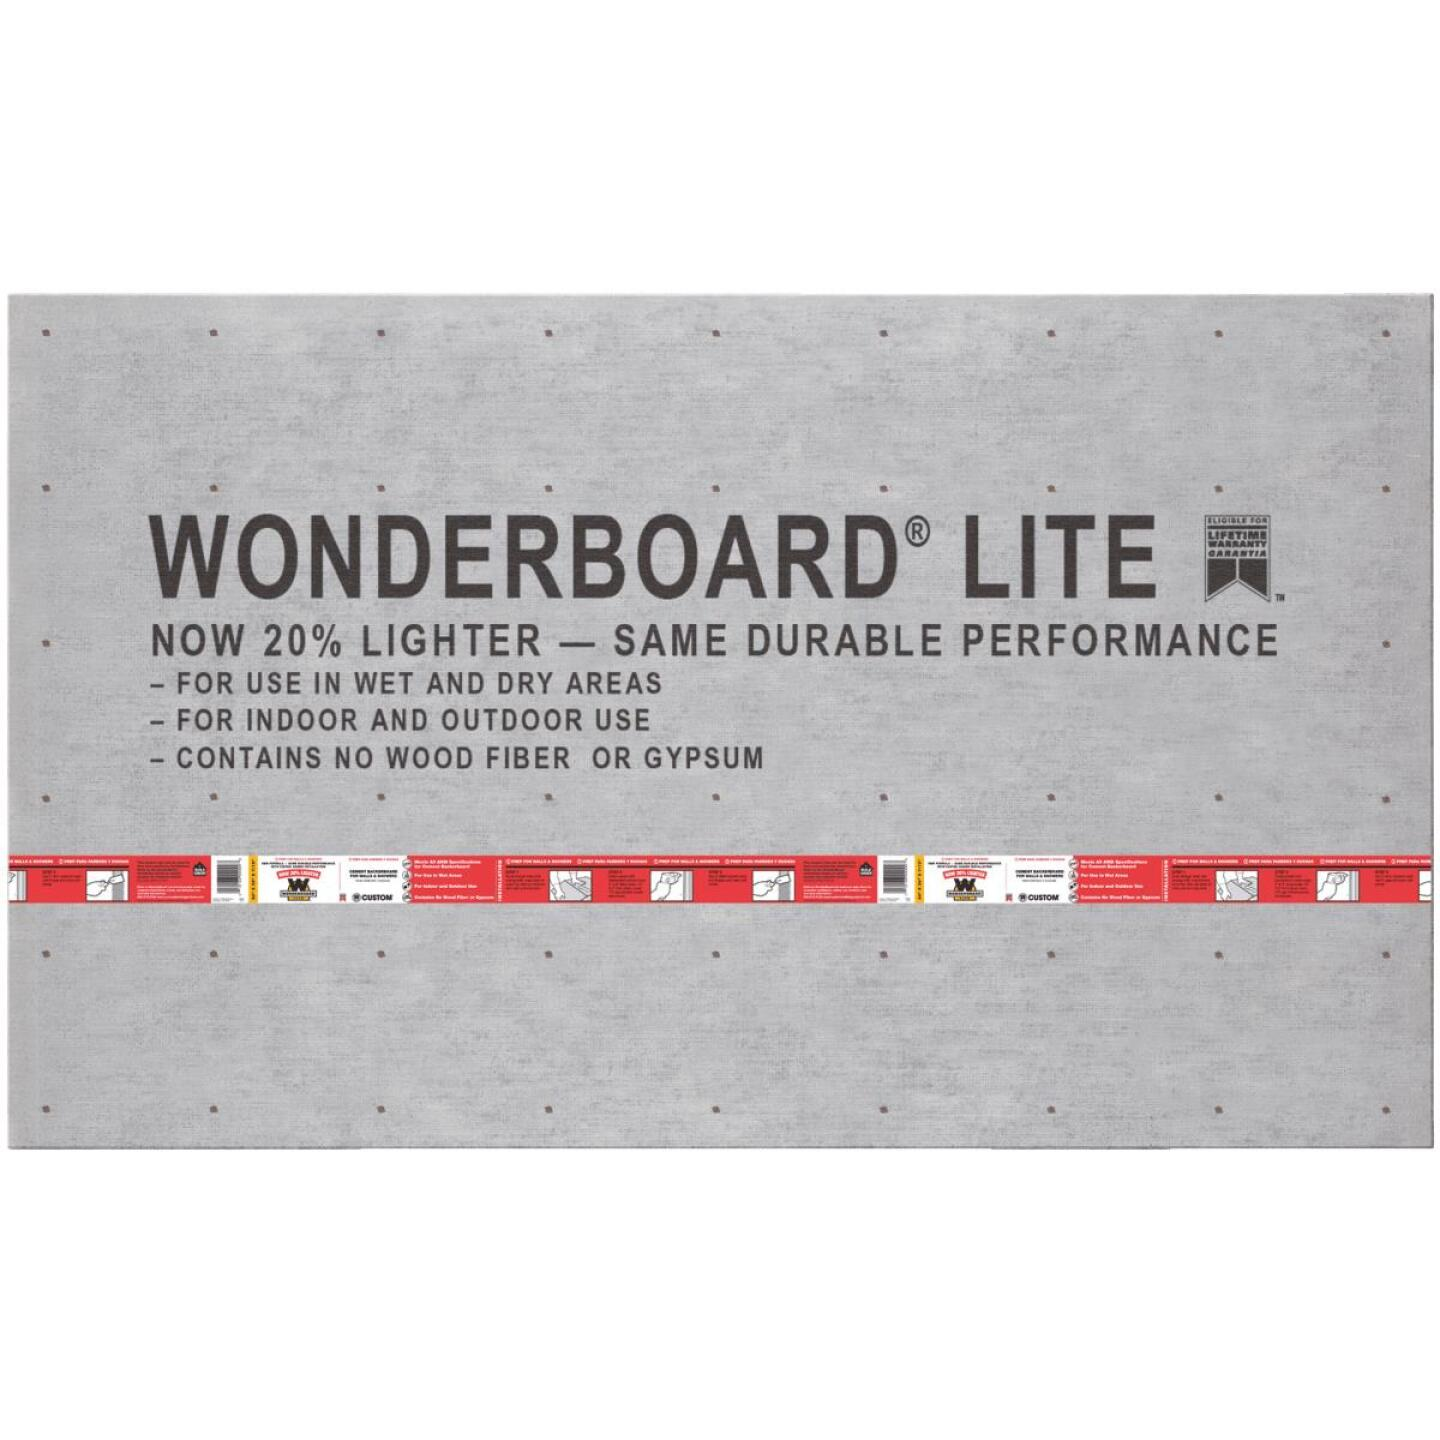 Wonderboard 7/16 In. x 36 In. x 60 In. Backerboard Image 1